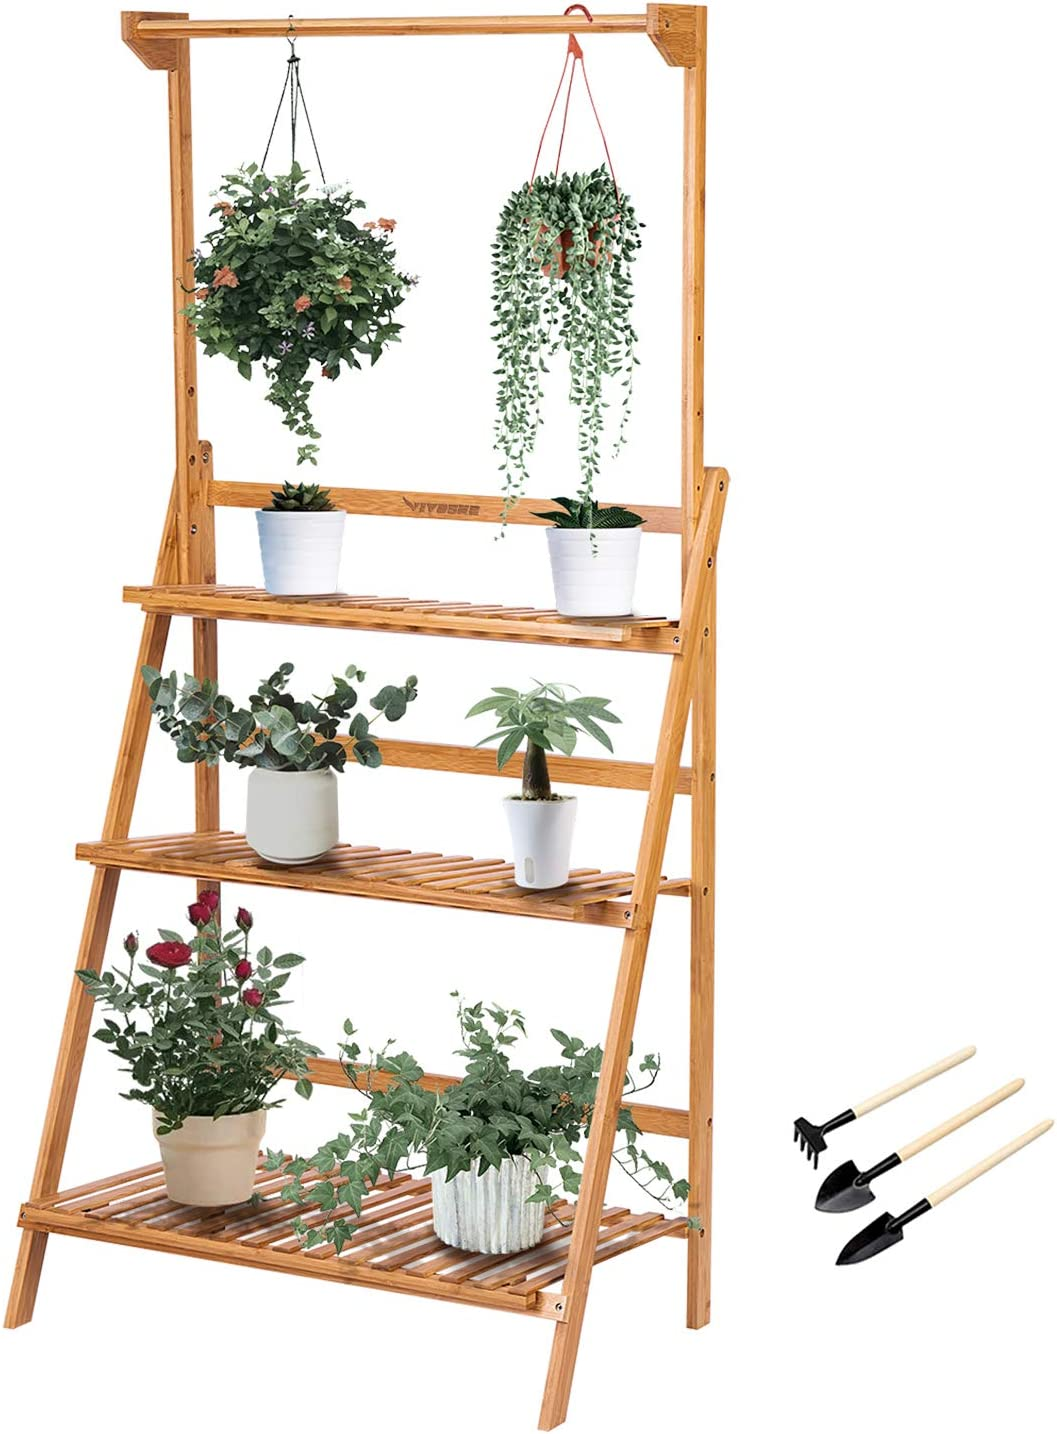 Vivosun 3 Tier Bamboo Hanging Plant Stand Foldable Planter Shelves Flower Pot Organizer Storage Rack Display Shelving Plants Shelf Holder For Patio Garden Balcony Indoor Outdoor Amazon Ca Patio Lawn Garden